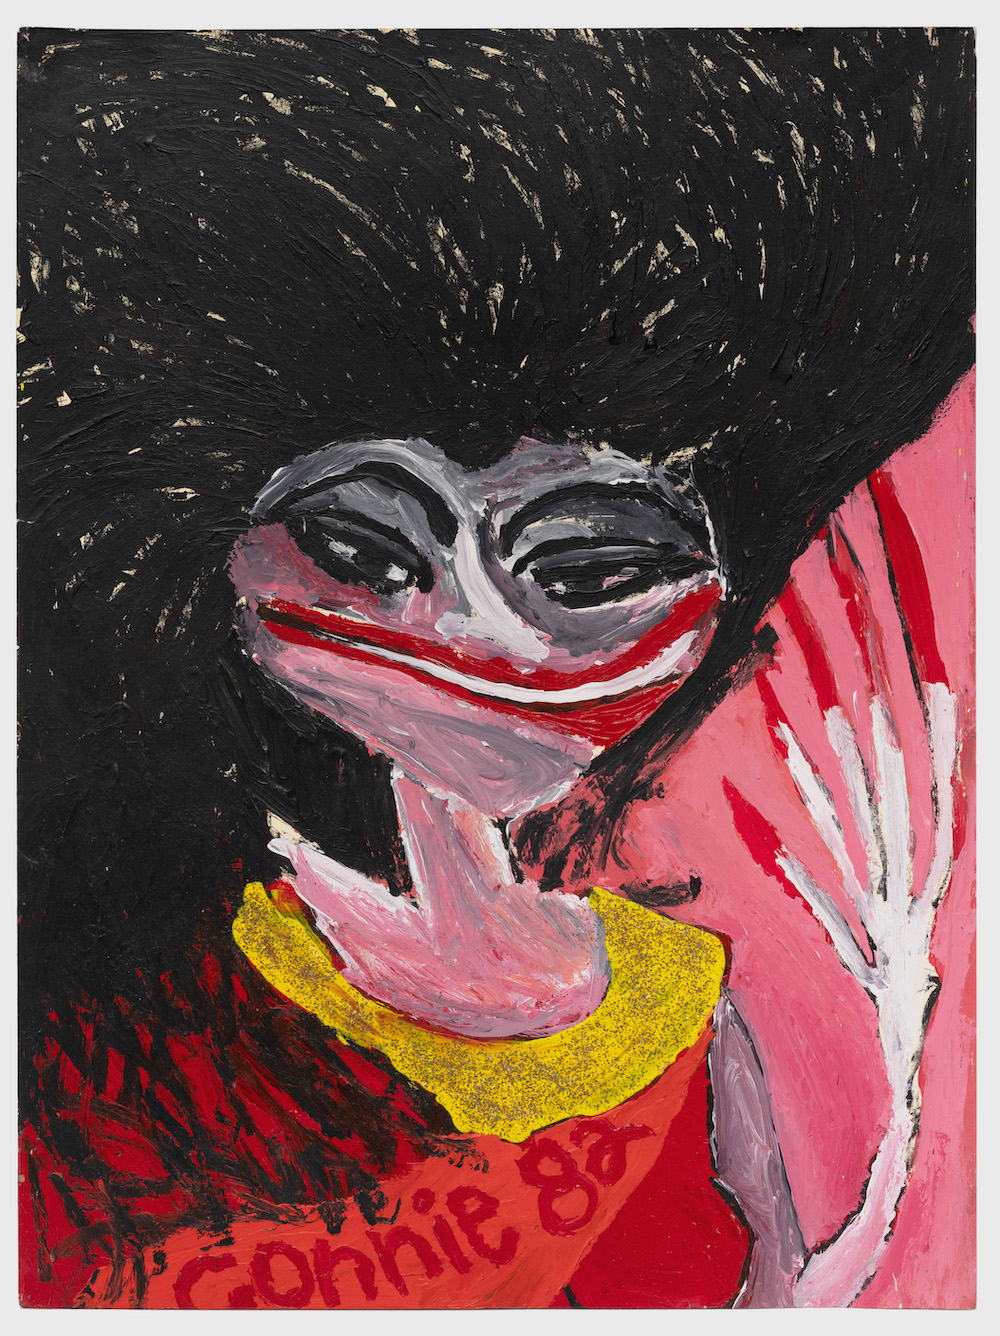 Tabboo!, Connie Francis at San Janero Festival 1982, acrylic and glitter on paper, 27 x 20